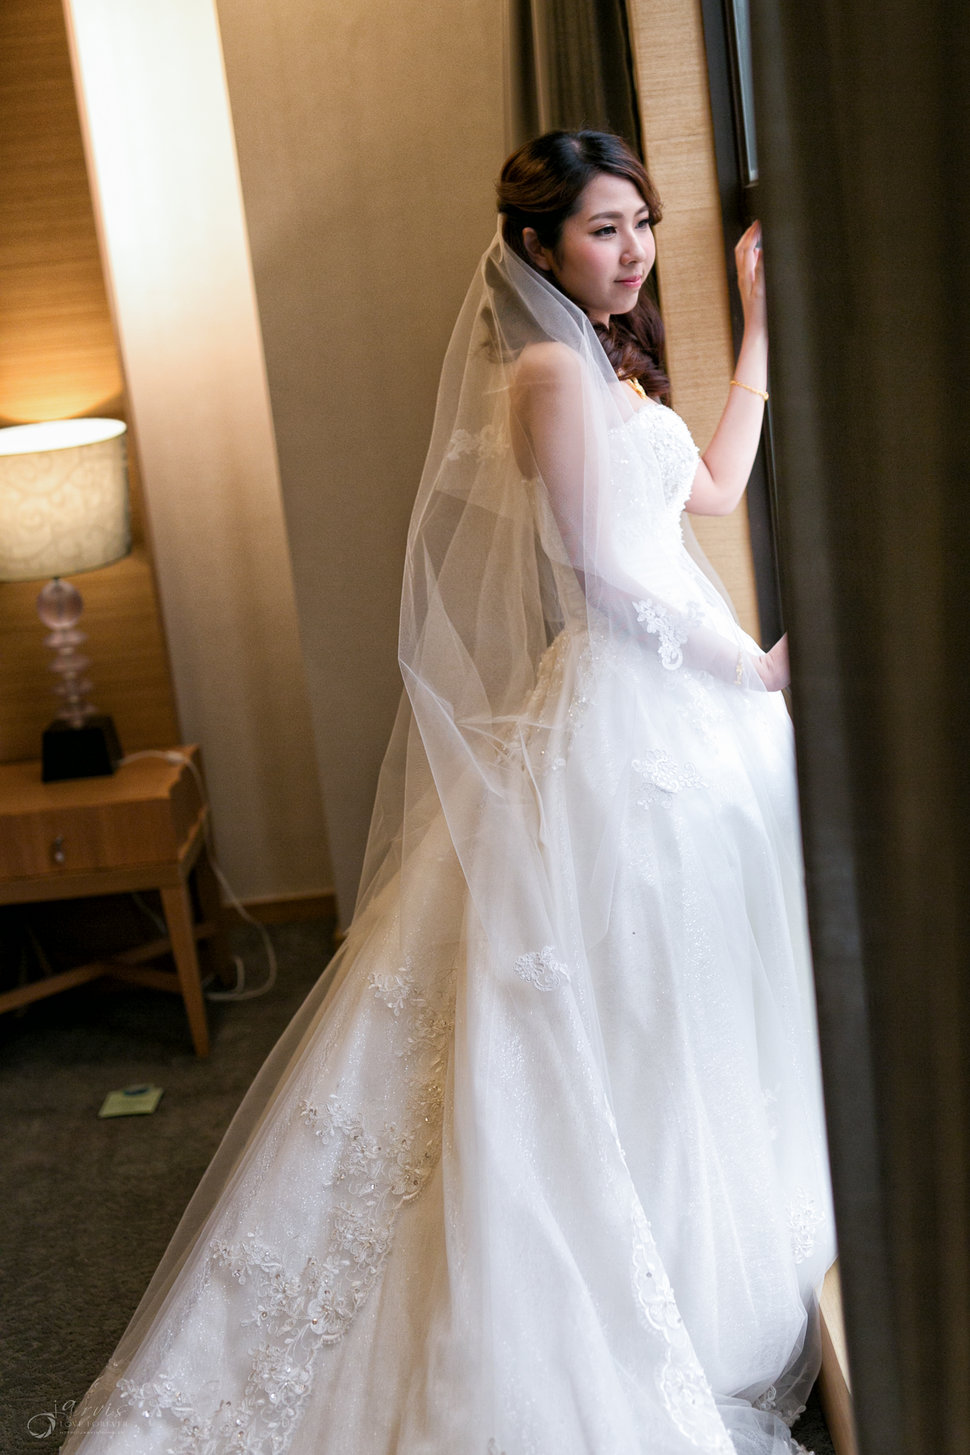 2D7A6699 - Jarvis Ding - 結婚吧